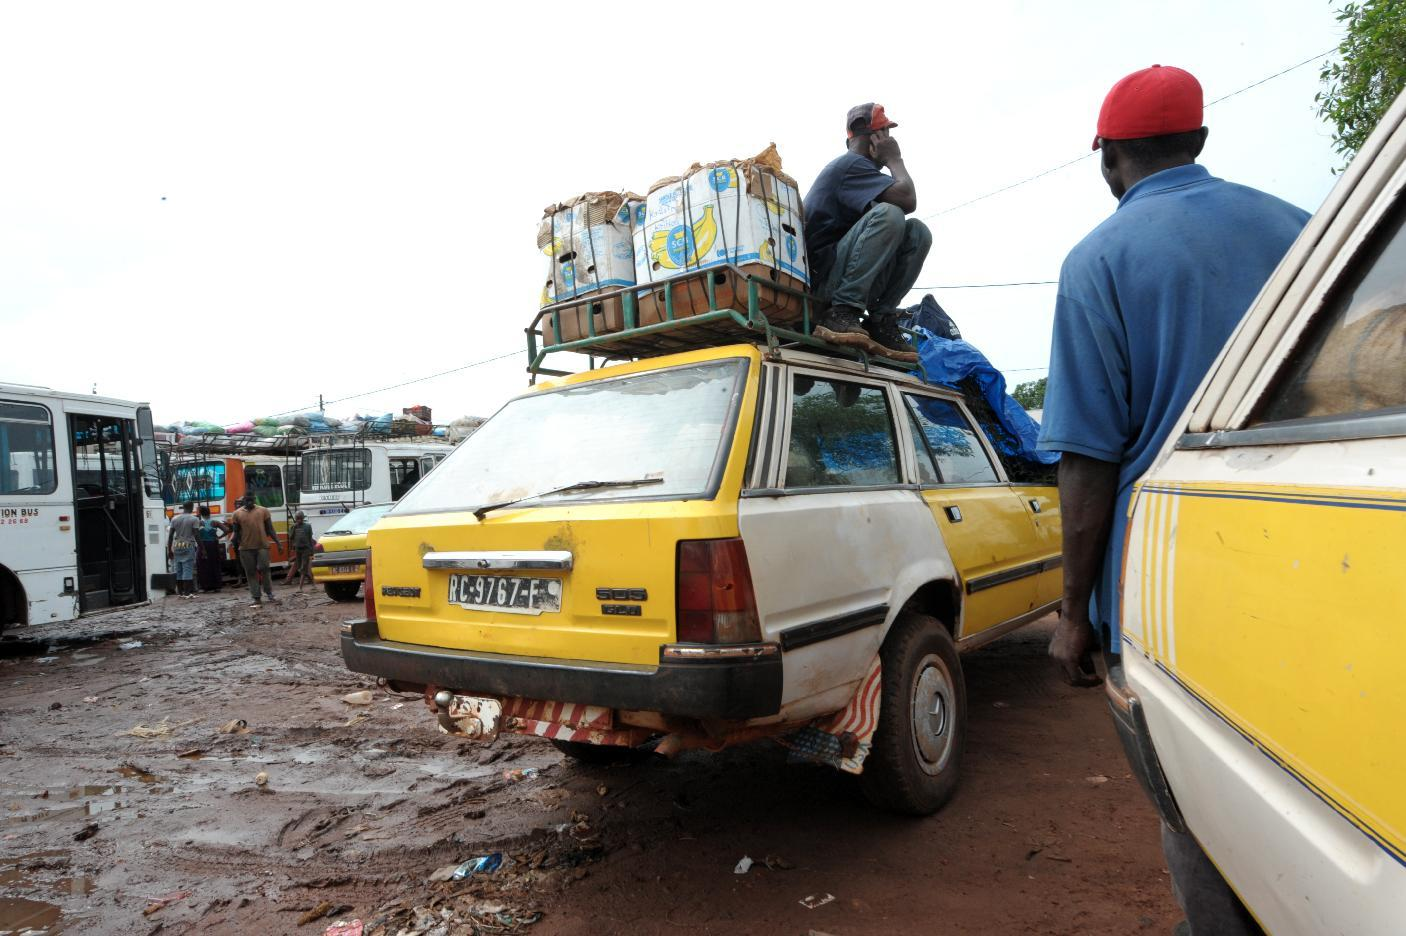 Vehicles wait for police clearance to drive across the border into neighboring Guinea from Senegal's southern border region on September 3, 2014